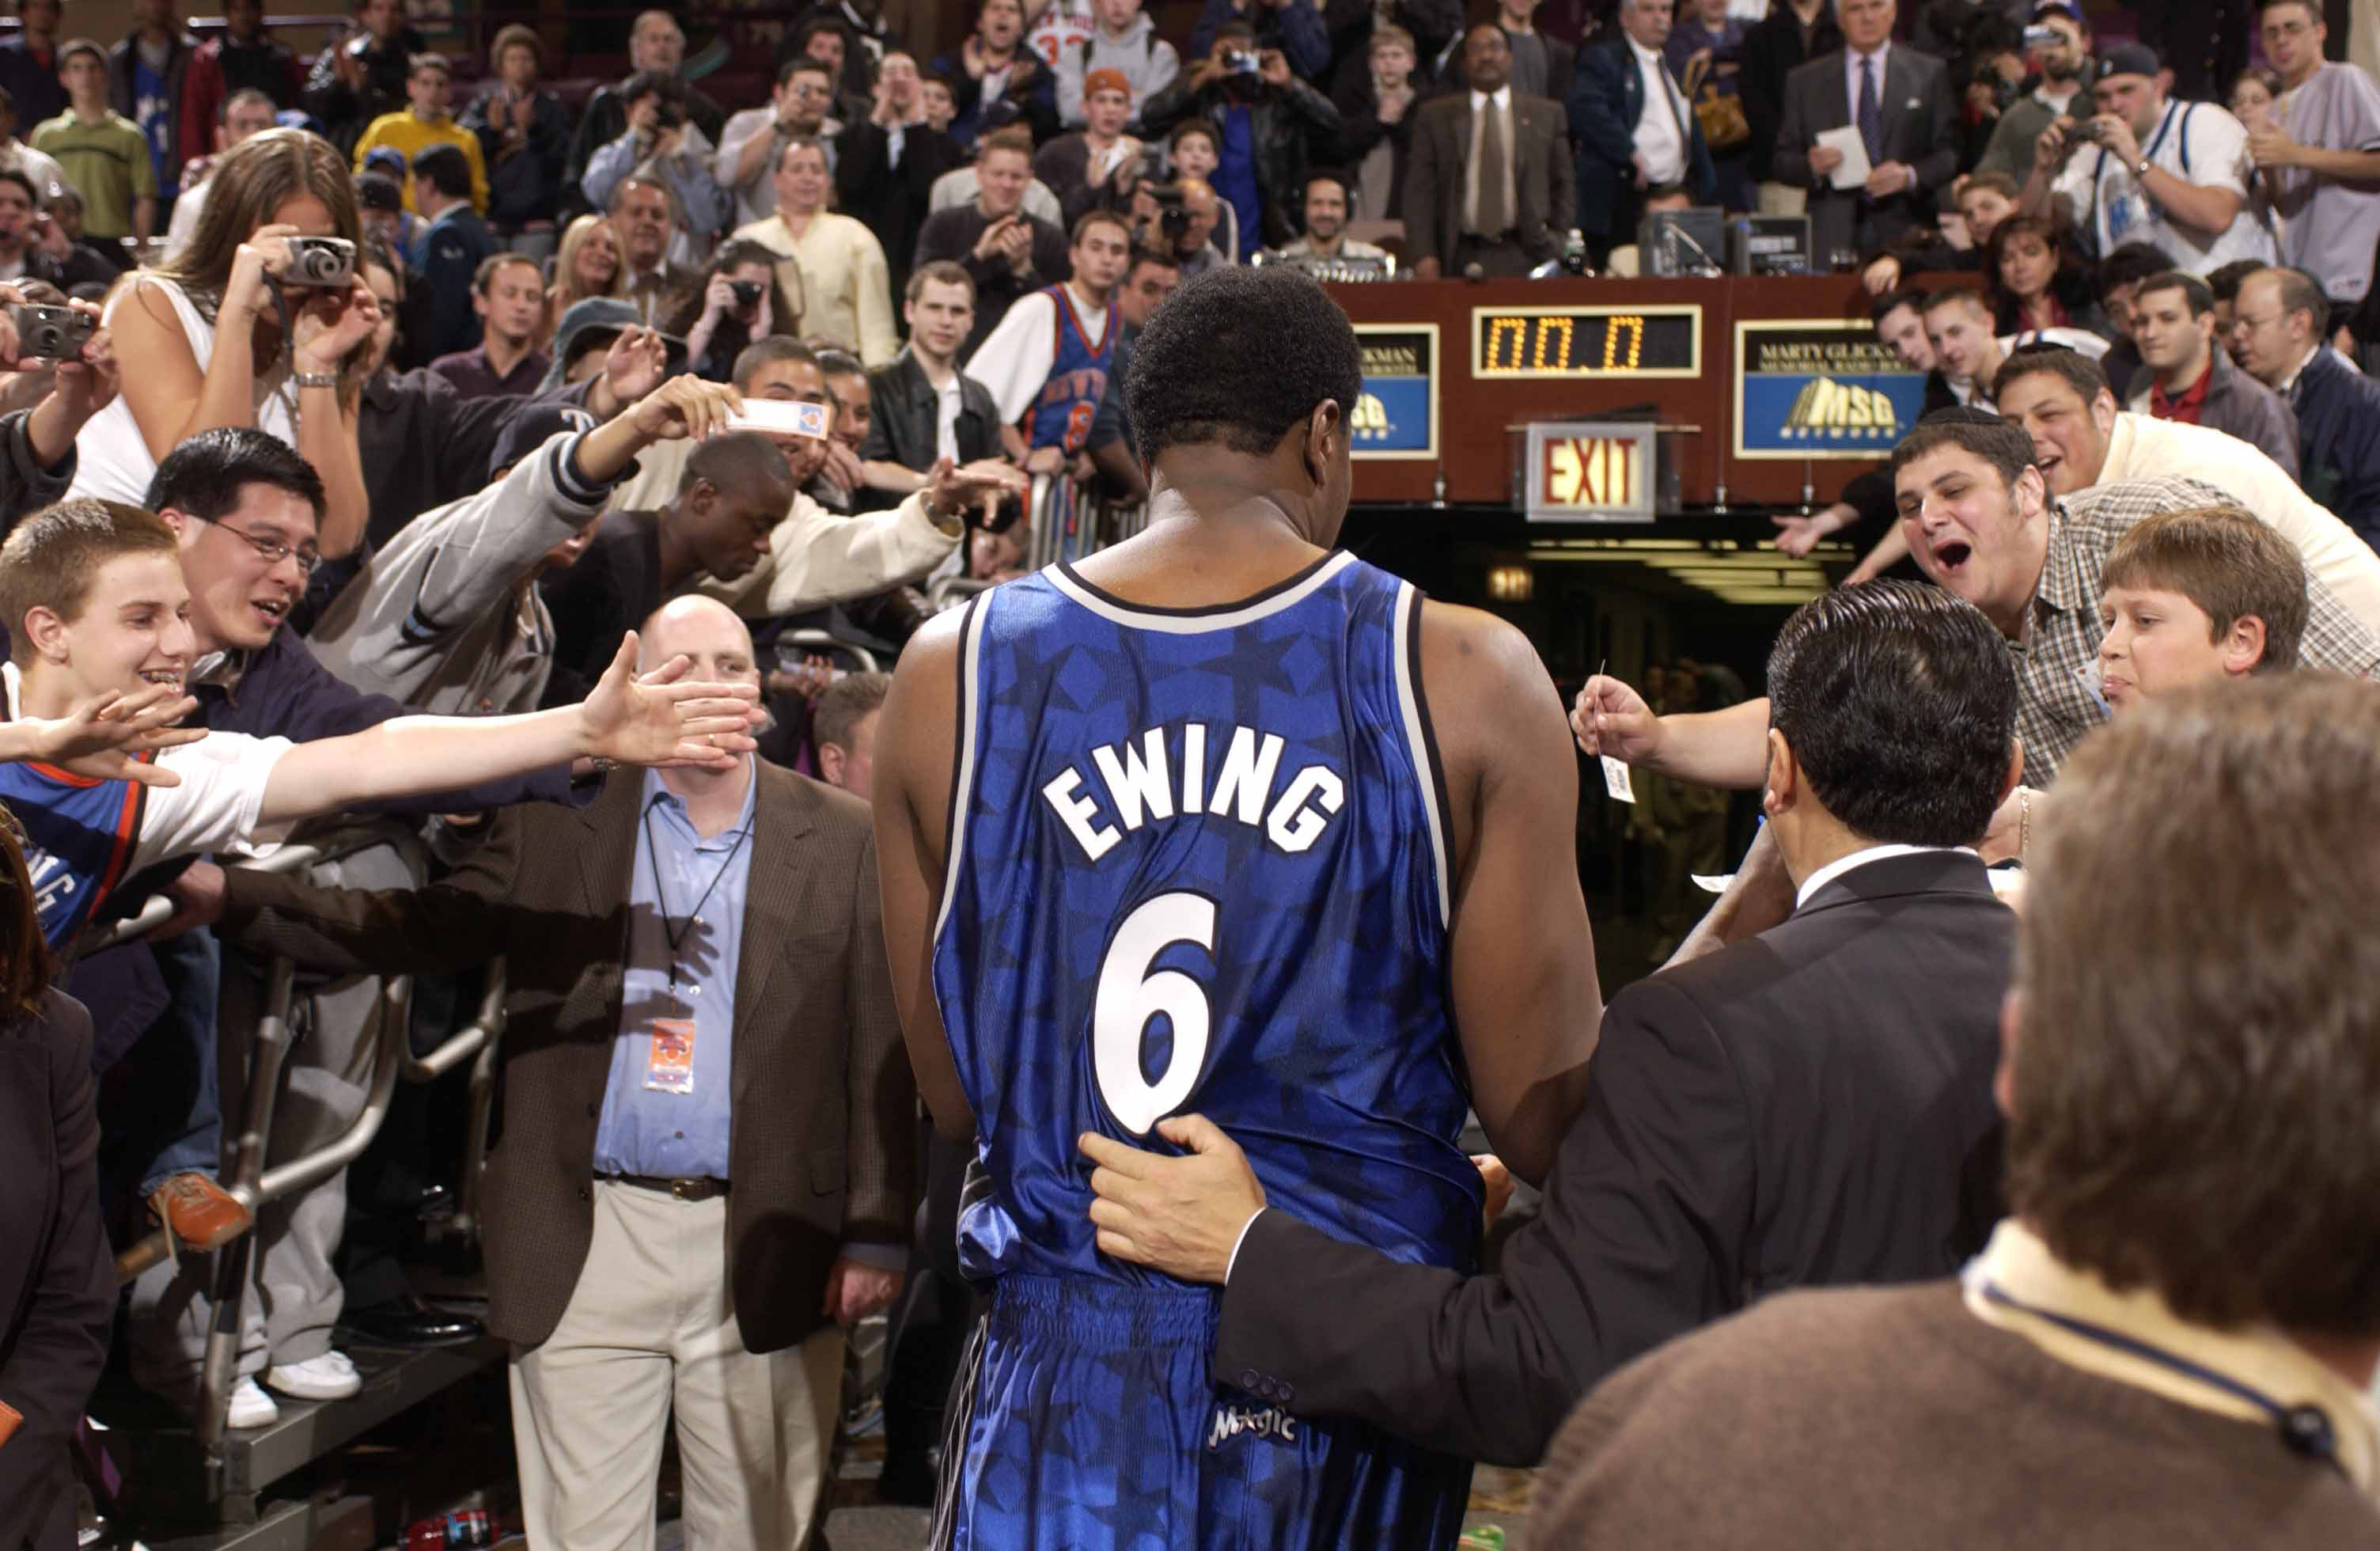 Patrick Ewing #6 of the Orlando Magic is cheered on by many fans as he leaves the floor after the game against the New York Knicks at Madison Square Garden